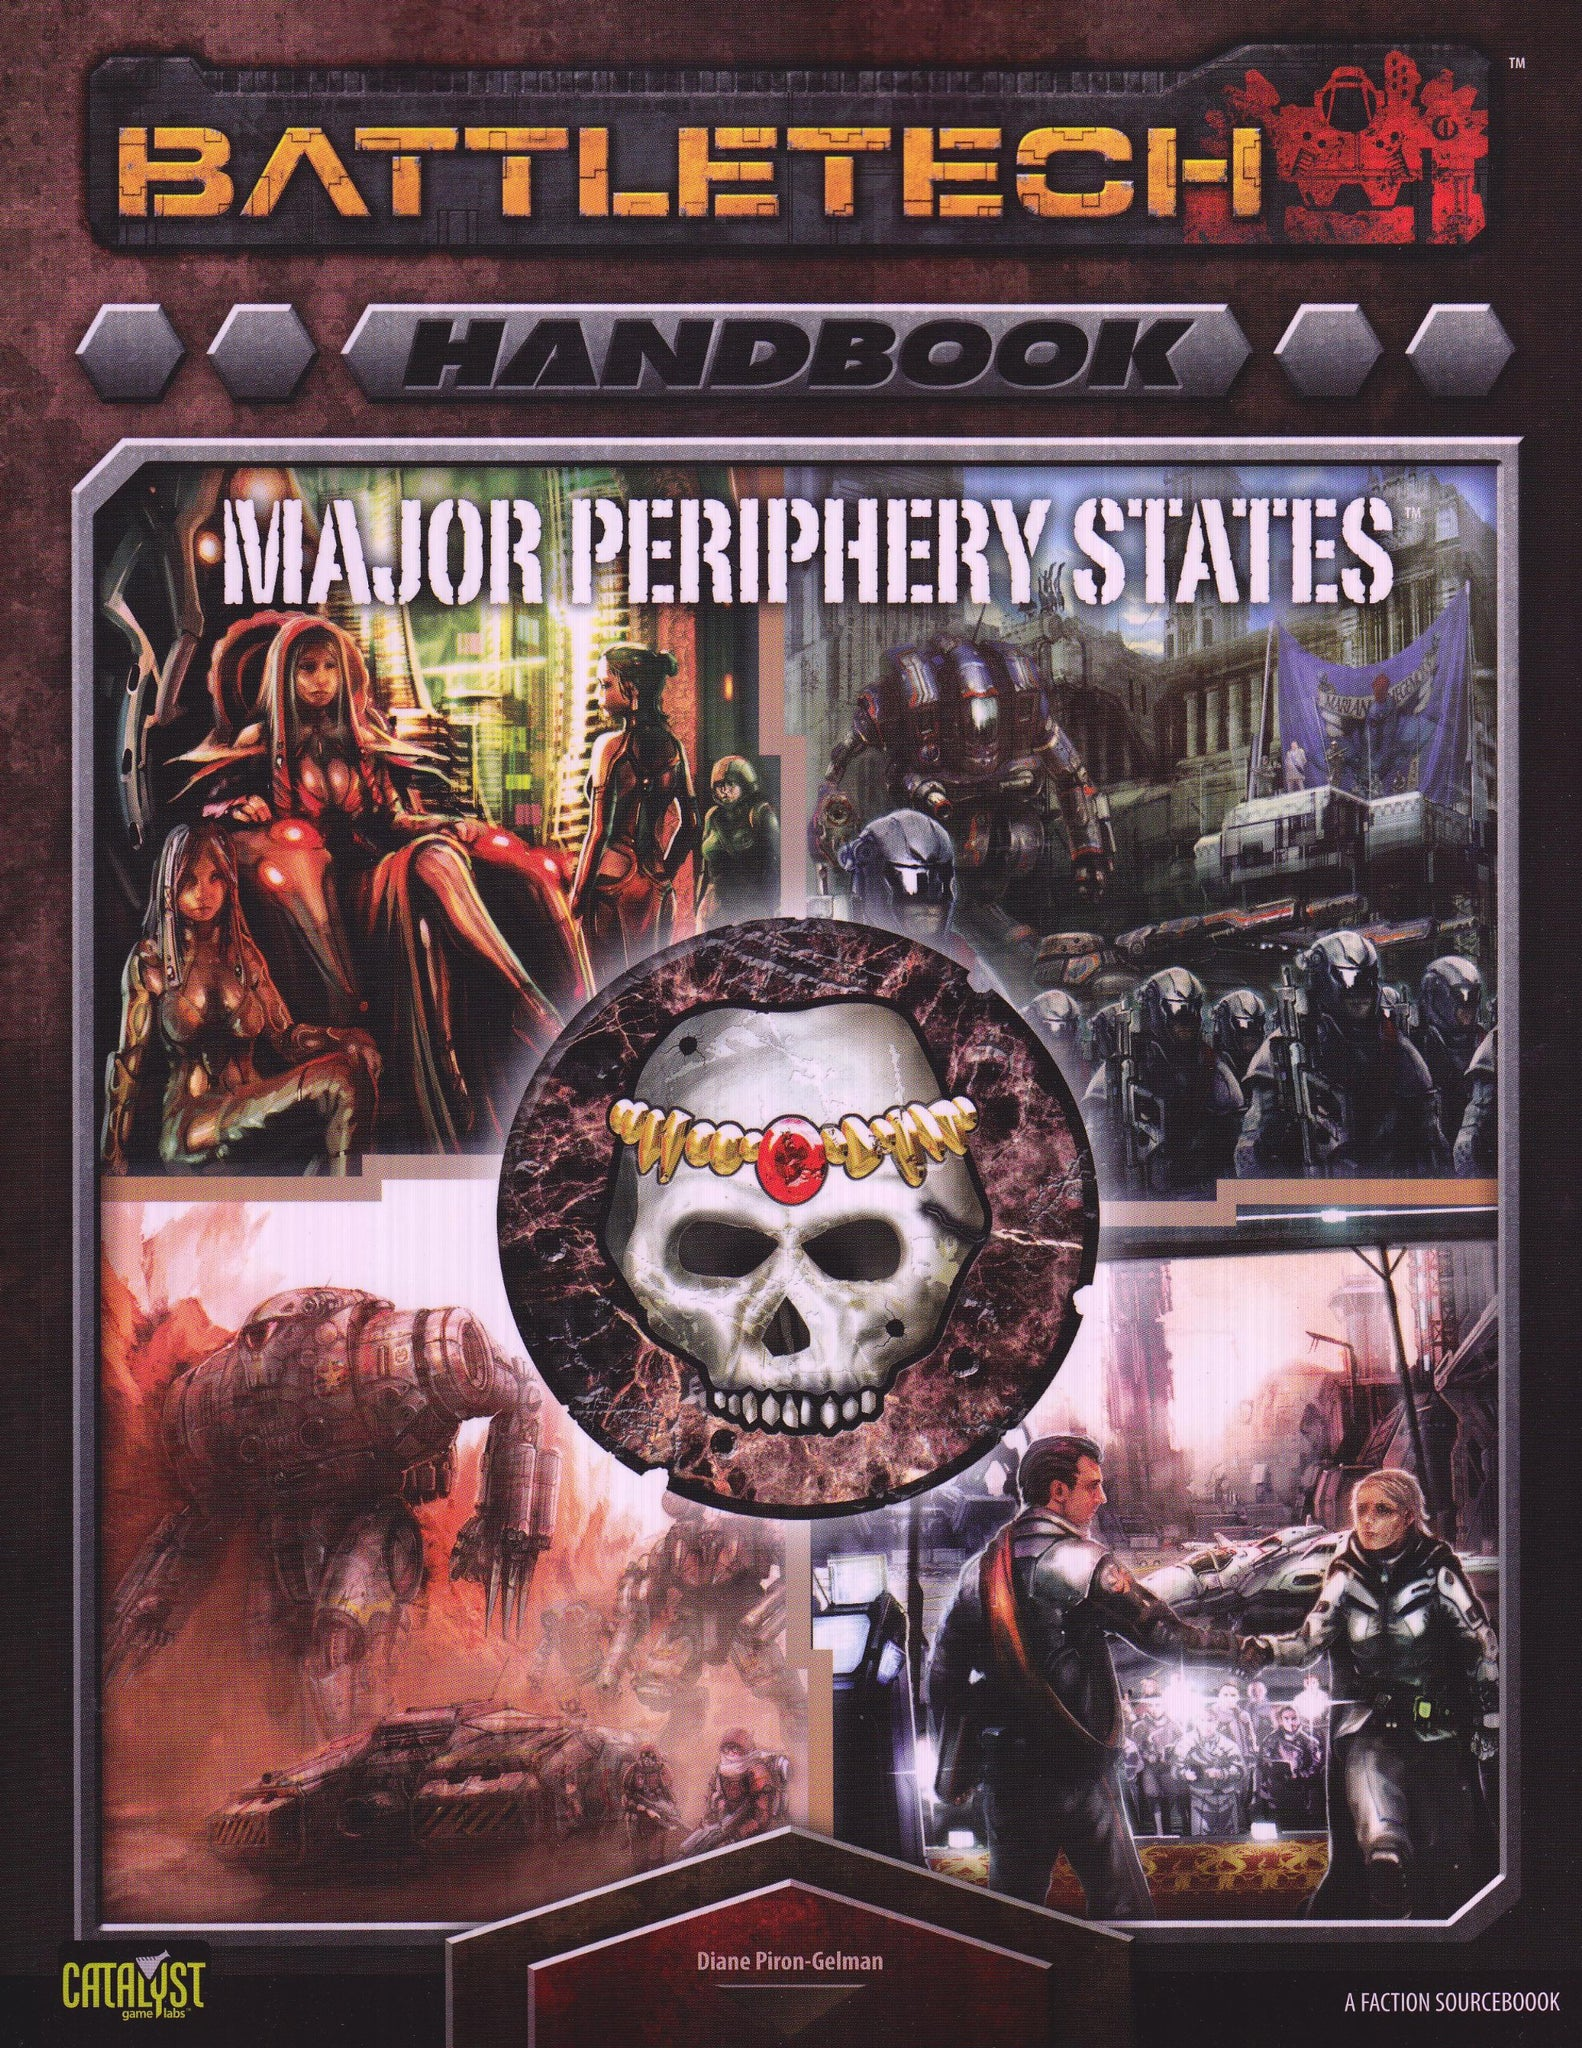 BattleTech - Major Periphery States